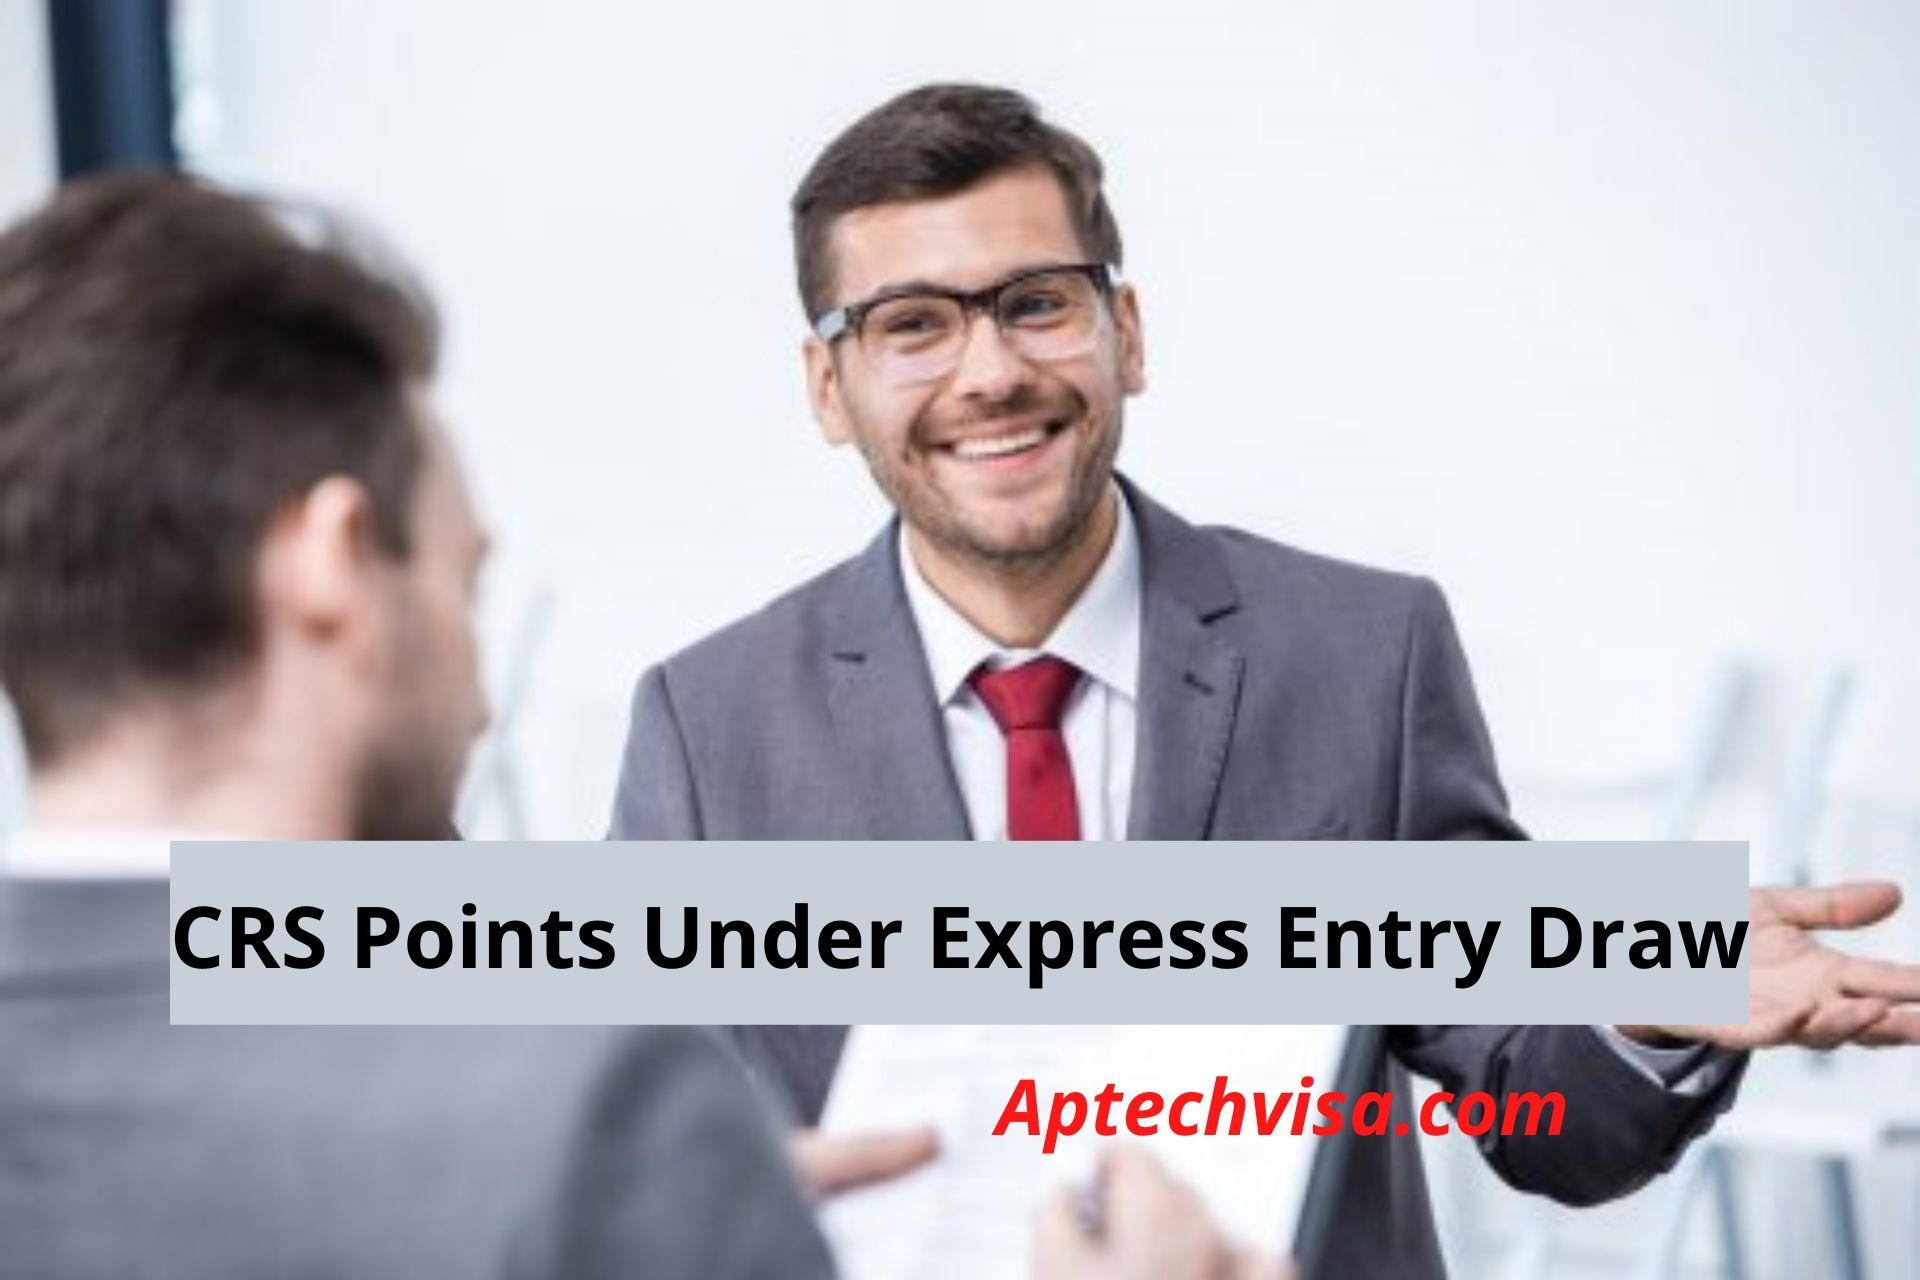 Express Entry Draw What is express entry draw? in 2020